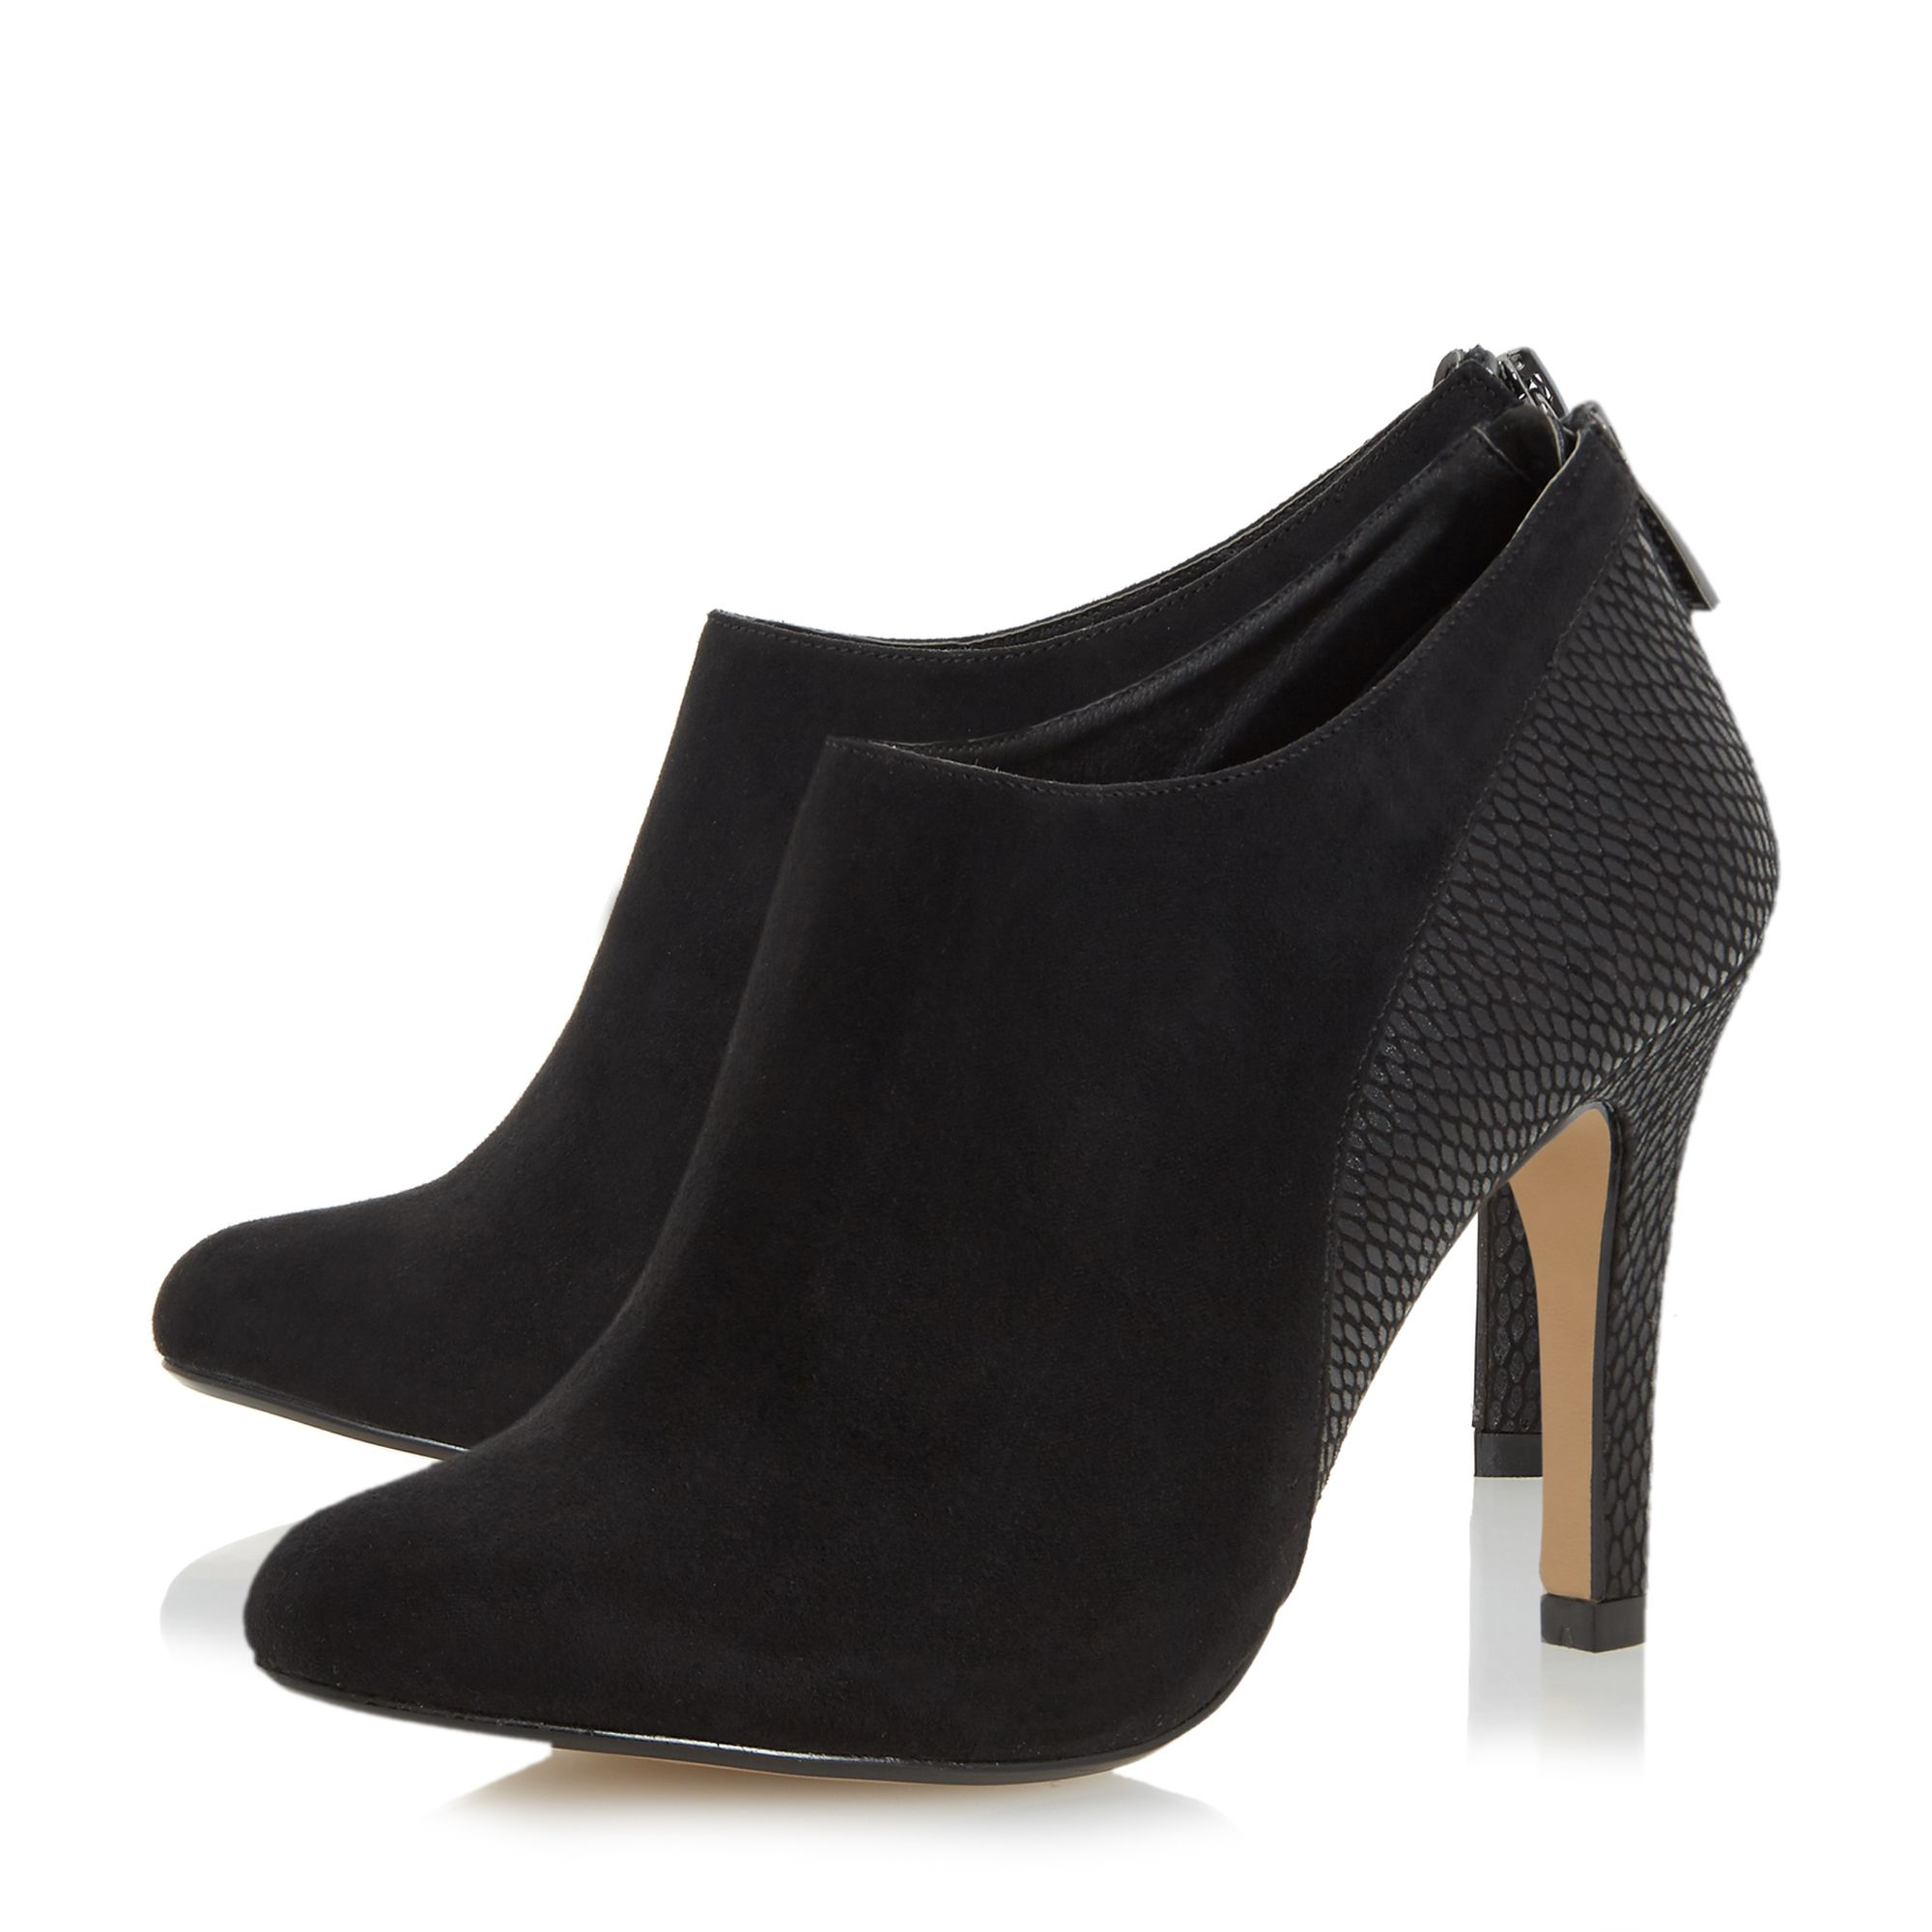 Dune Opera Mixed Material Heeled Ankle Boots in Black (Natural)